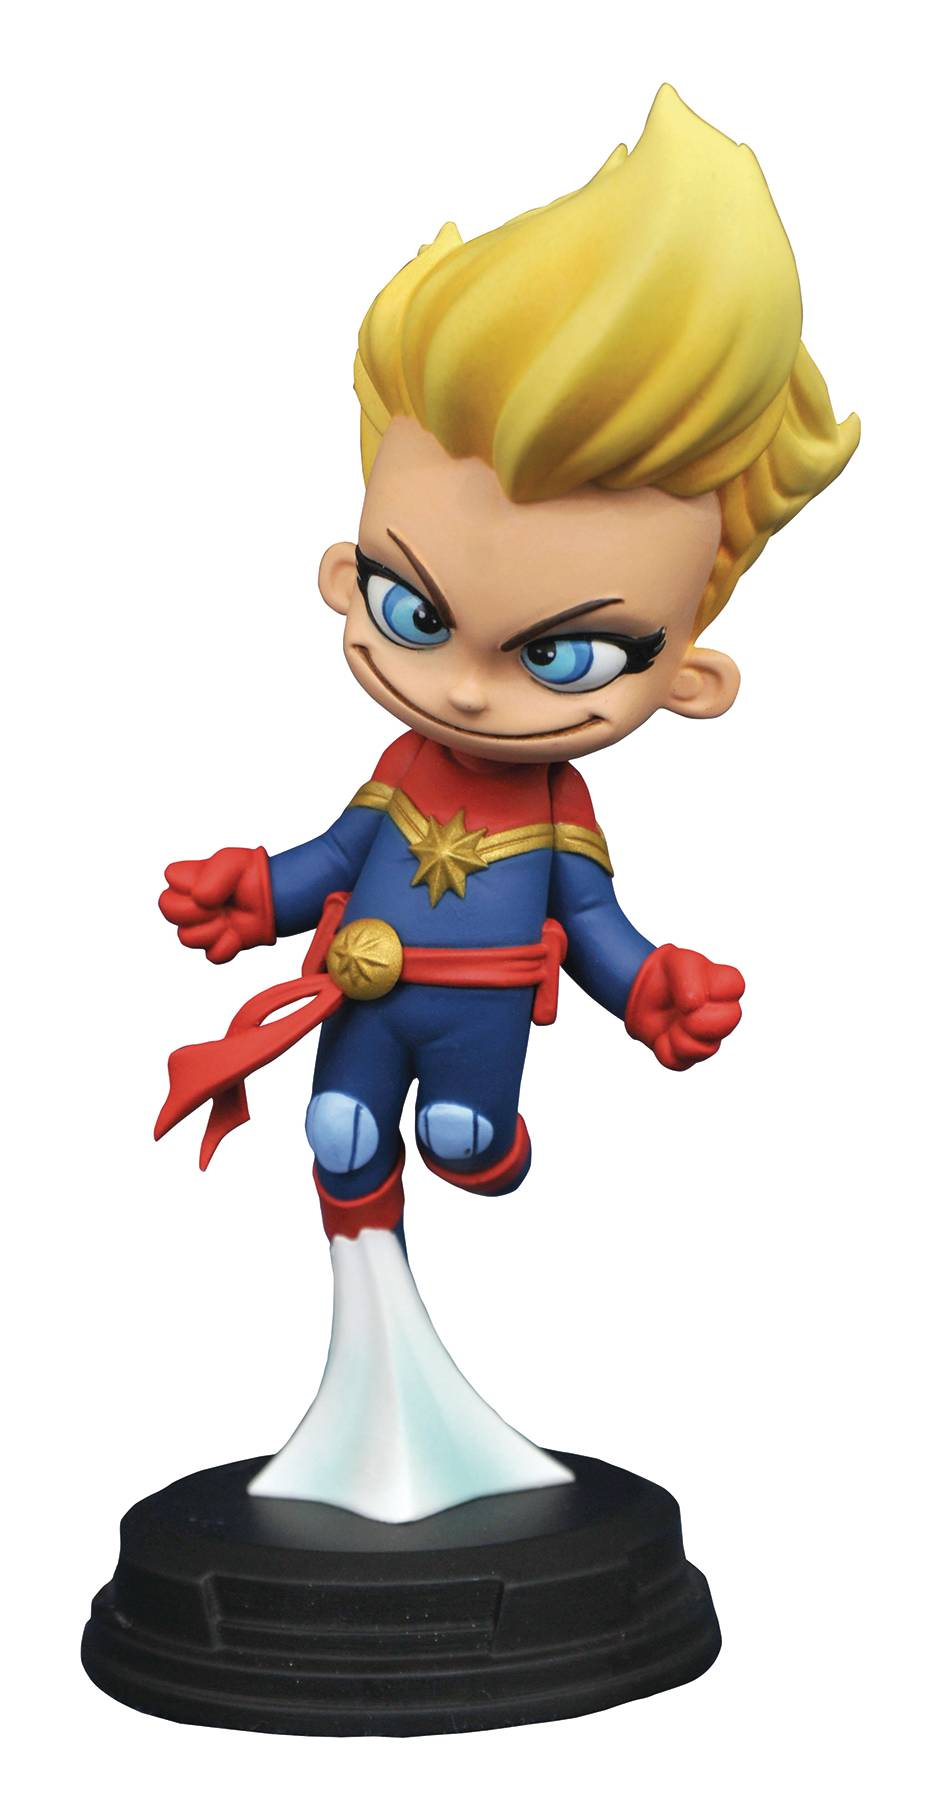 Pre-Order Diamond Marvel Captain Marvel Animated Statue